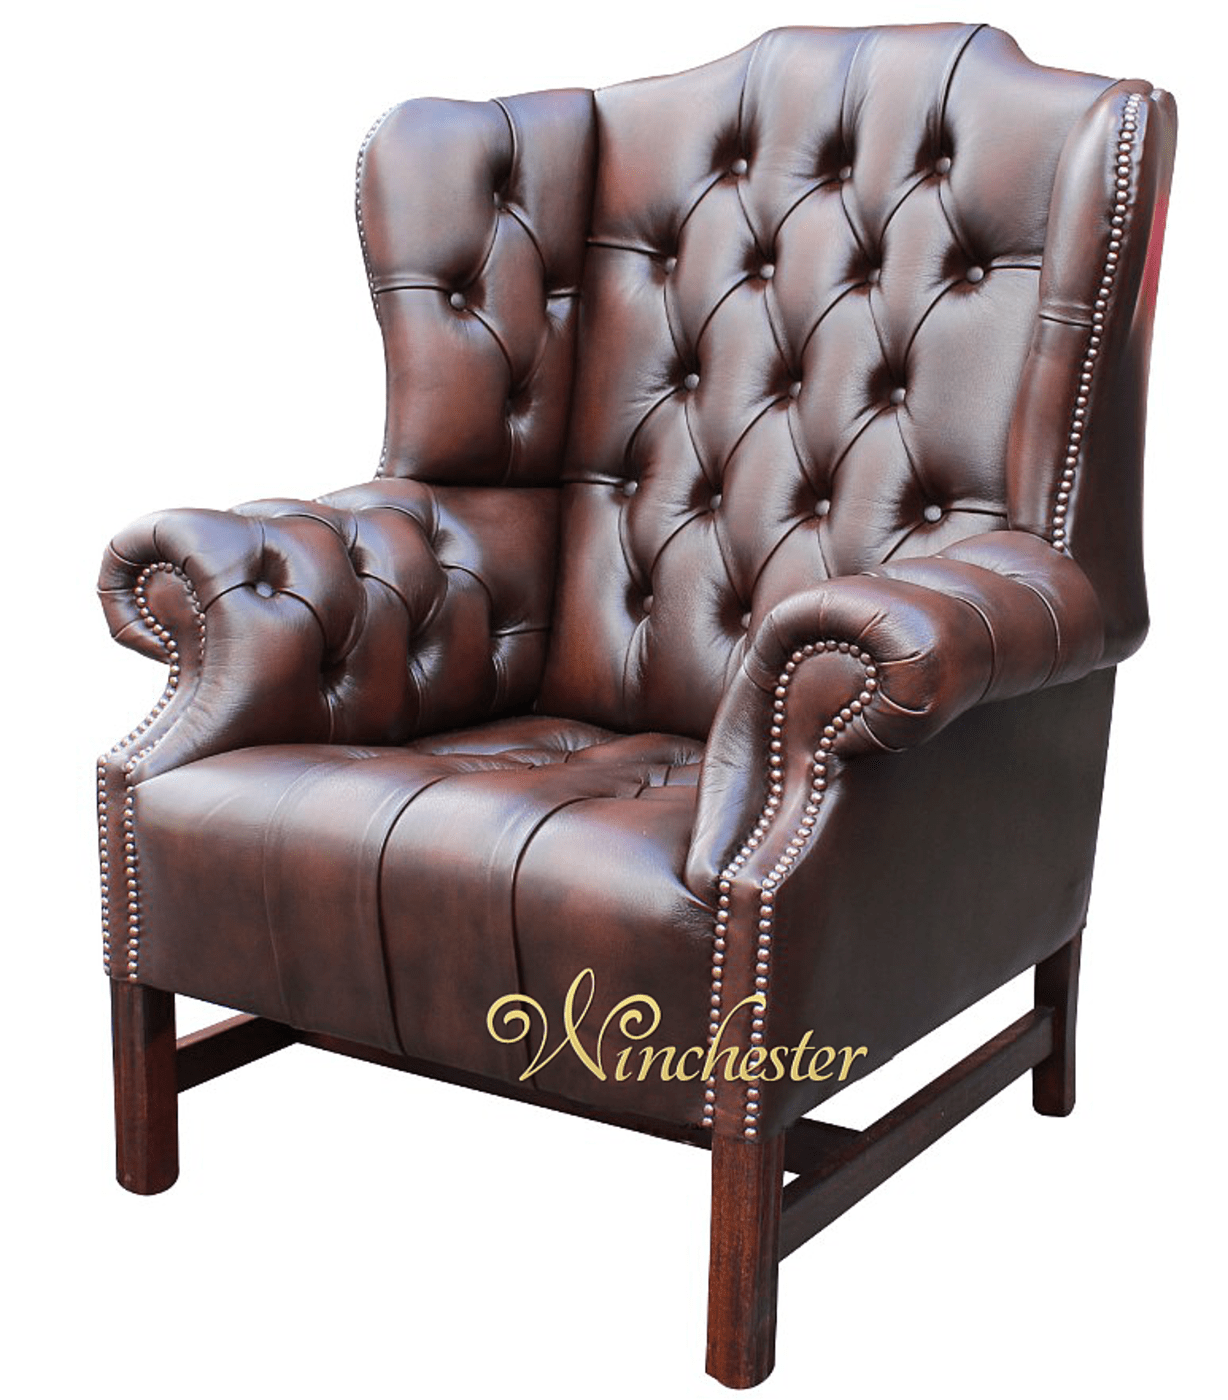 brown leather studded sofa stearns and foster bed chesterfield churchill high back wing chair uk ...